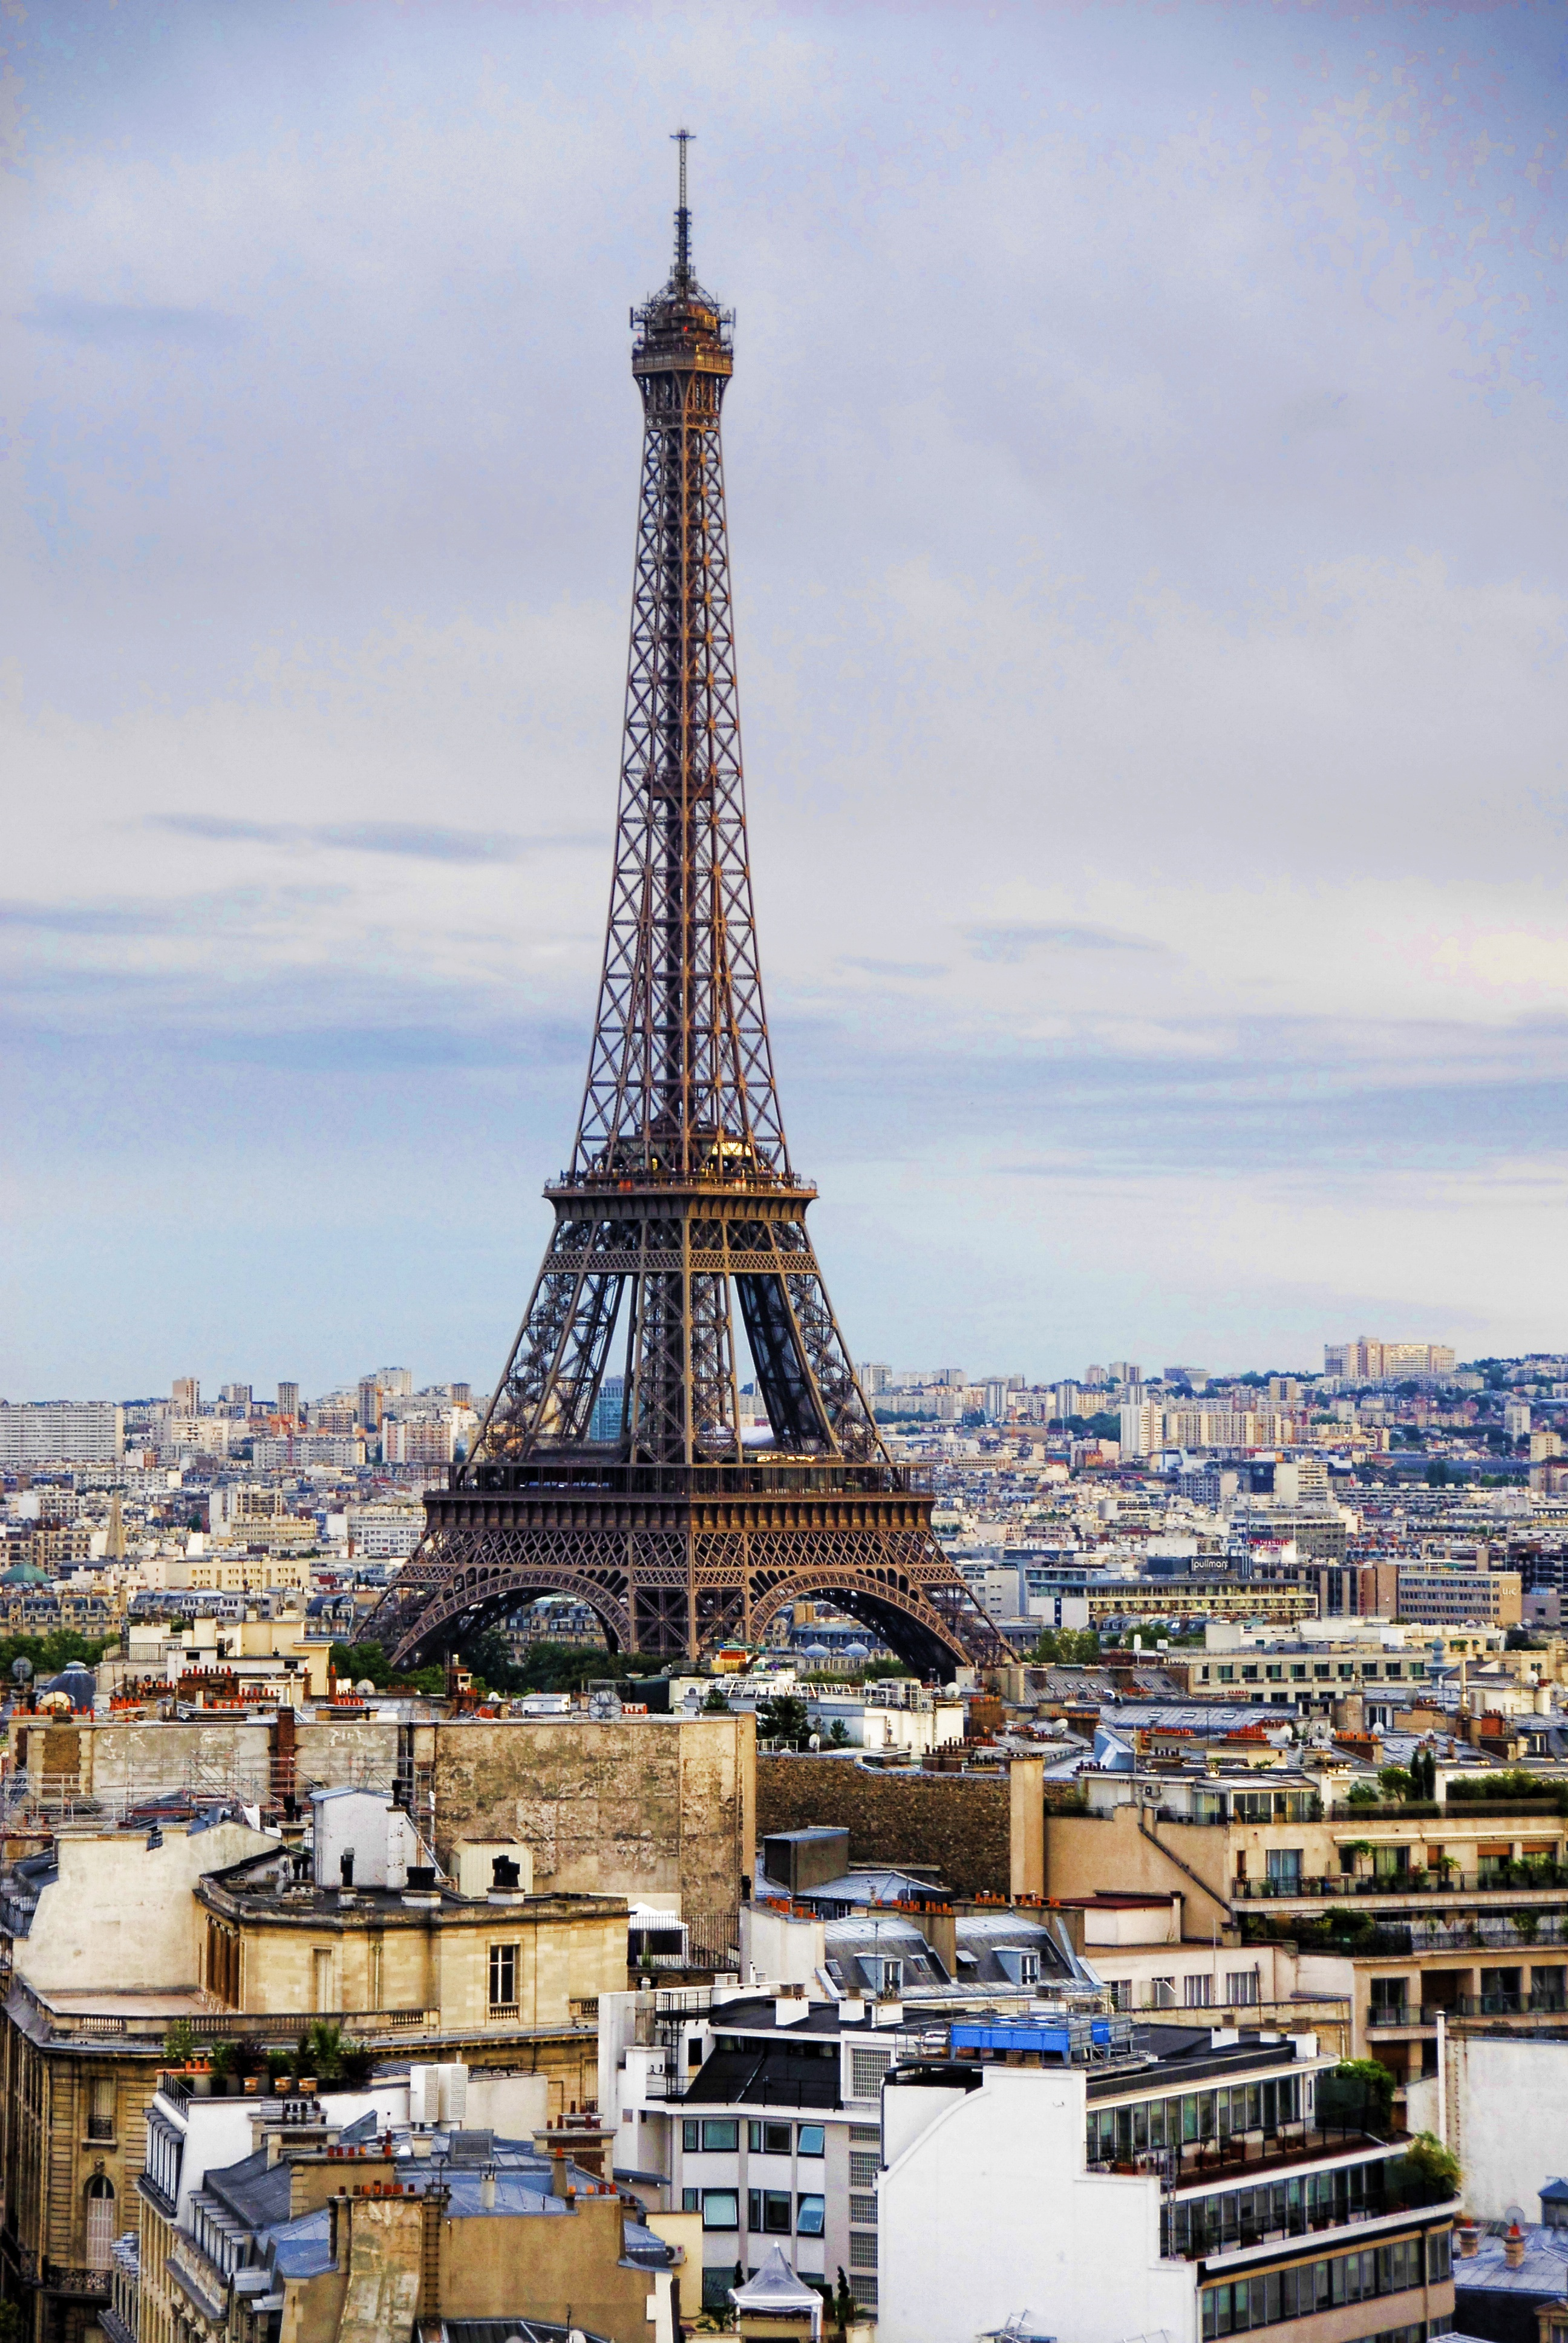 Best Hd Wallpapers Free Download Eiffel Tower During Daytime 183 Free Stock Photo